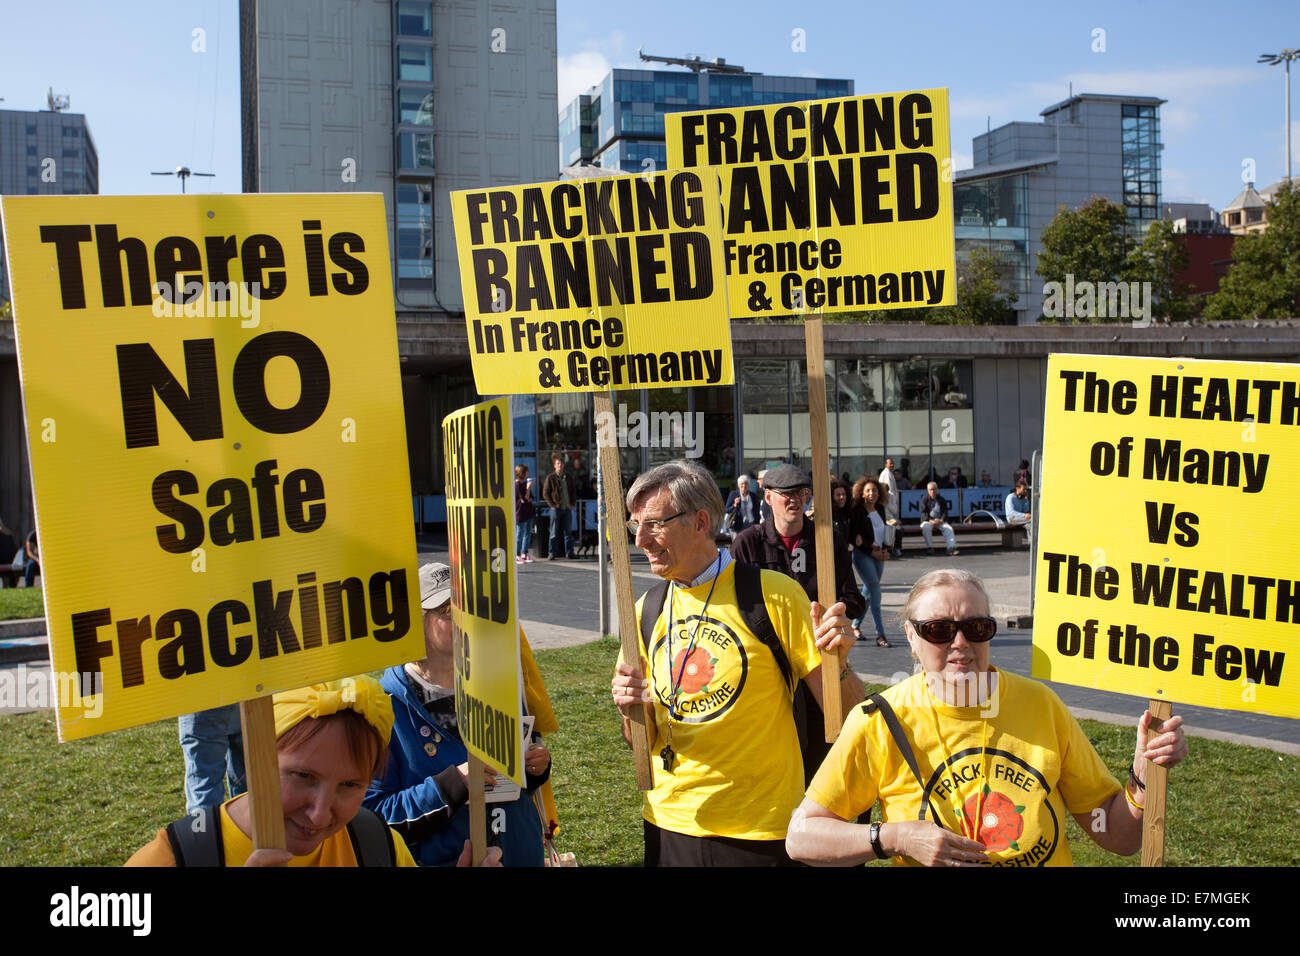 There is No Safe Fracking, protest in Manchester, UK  21st September, UK.  Frack Free Greater Manchester's People's Stock Photo